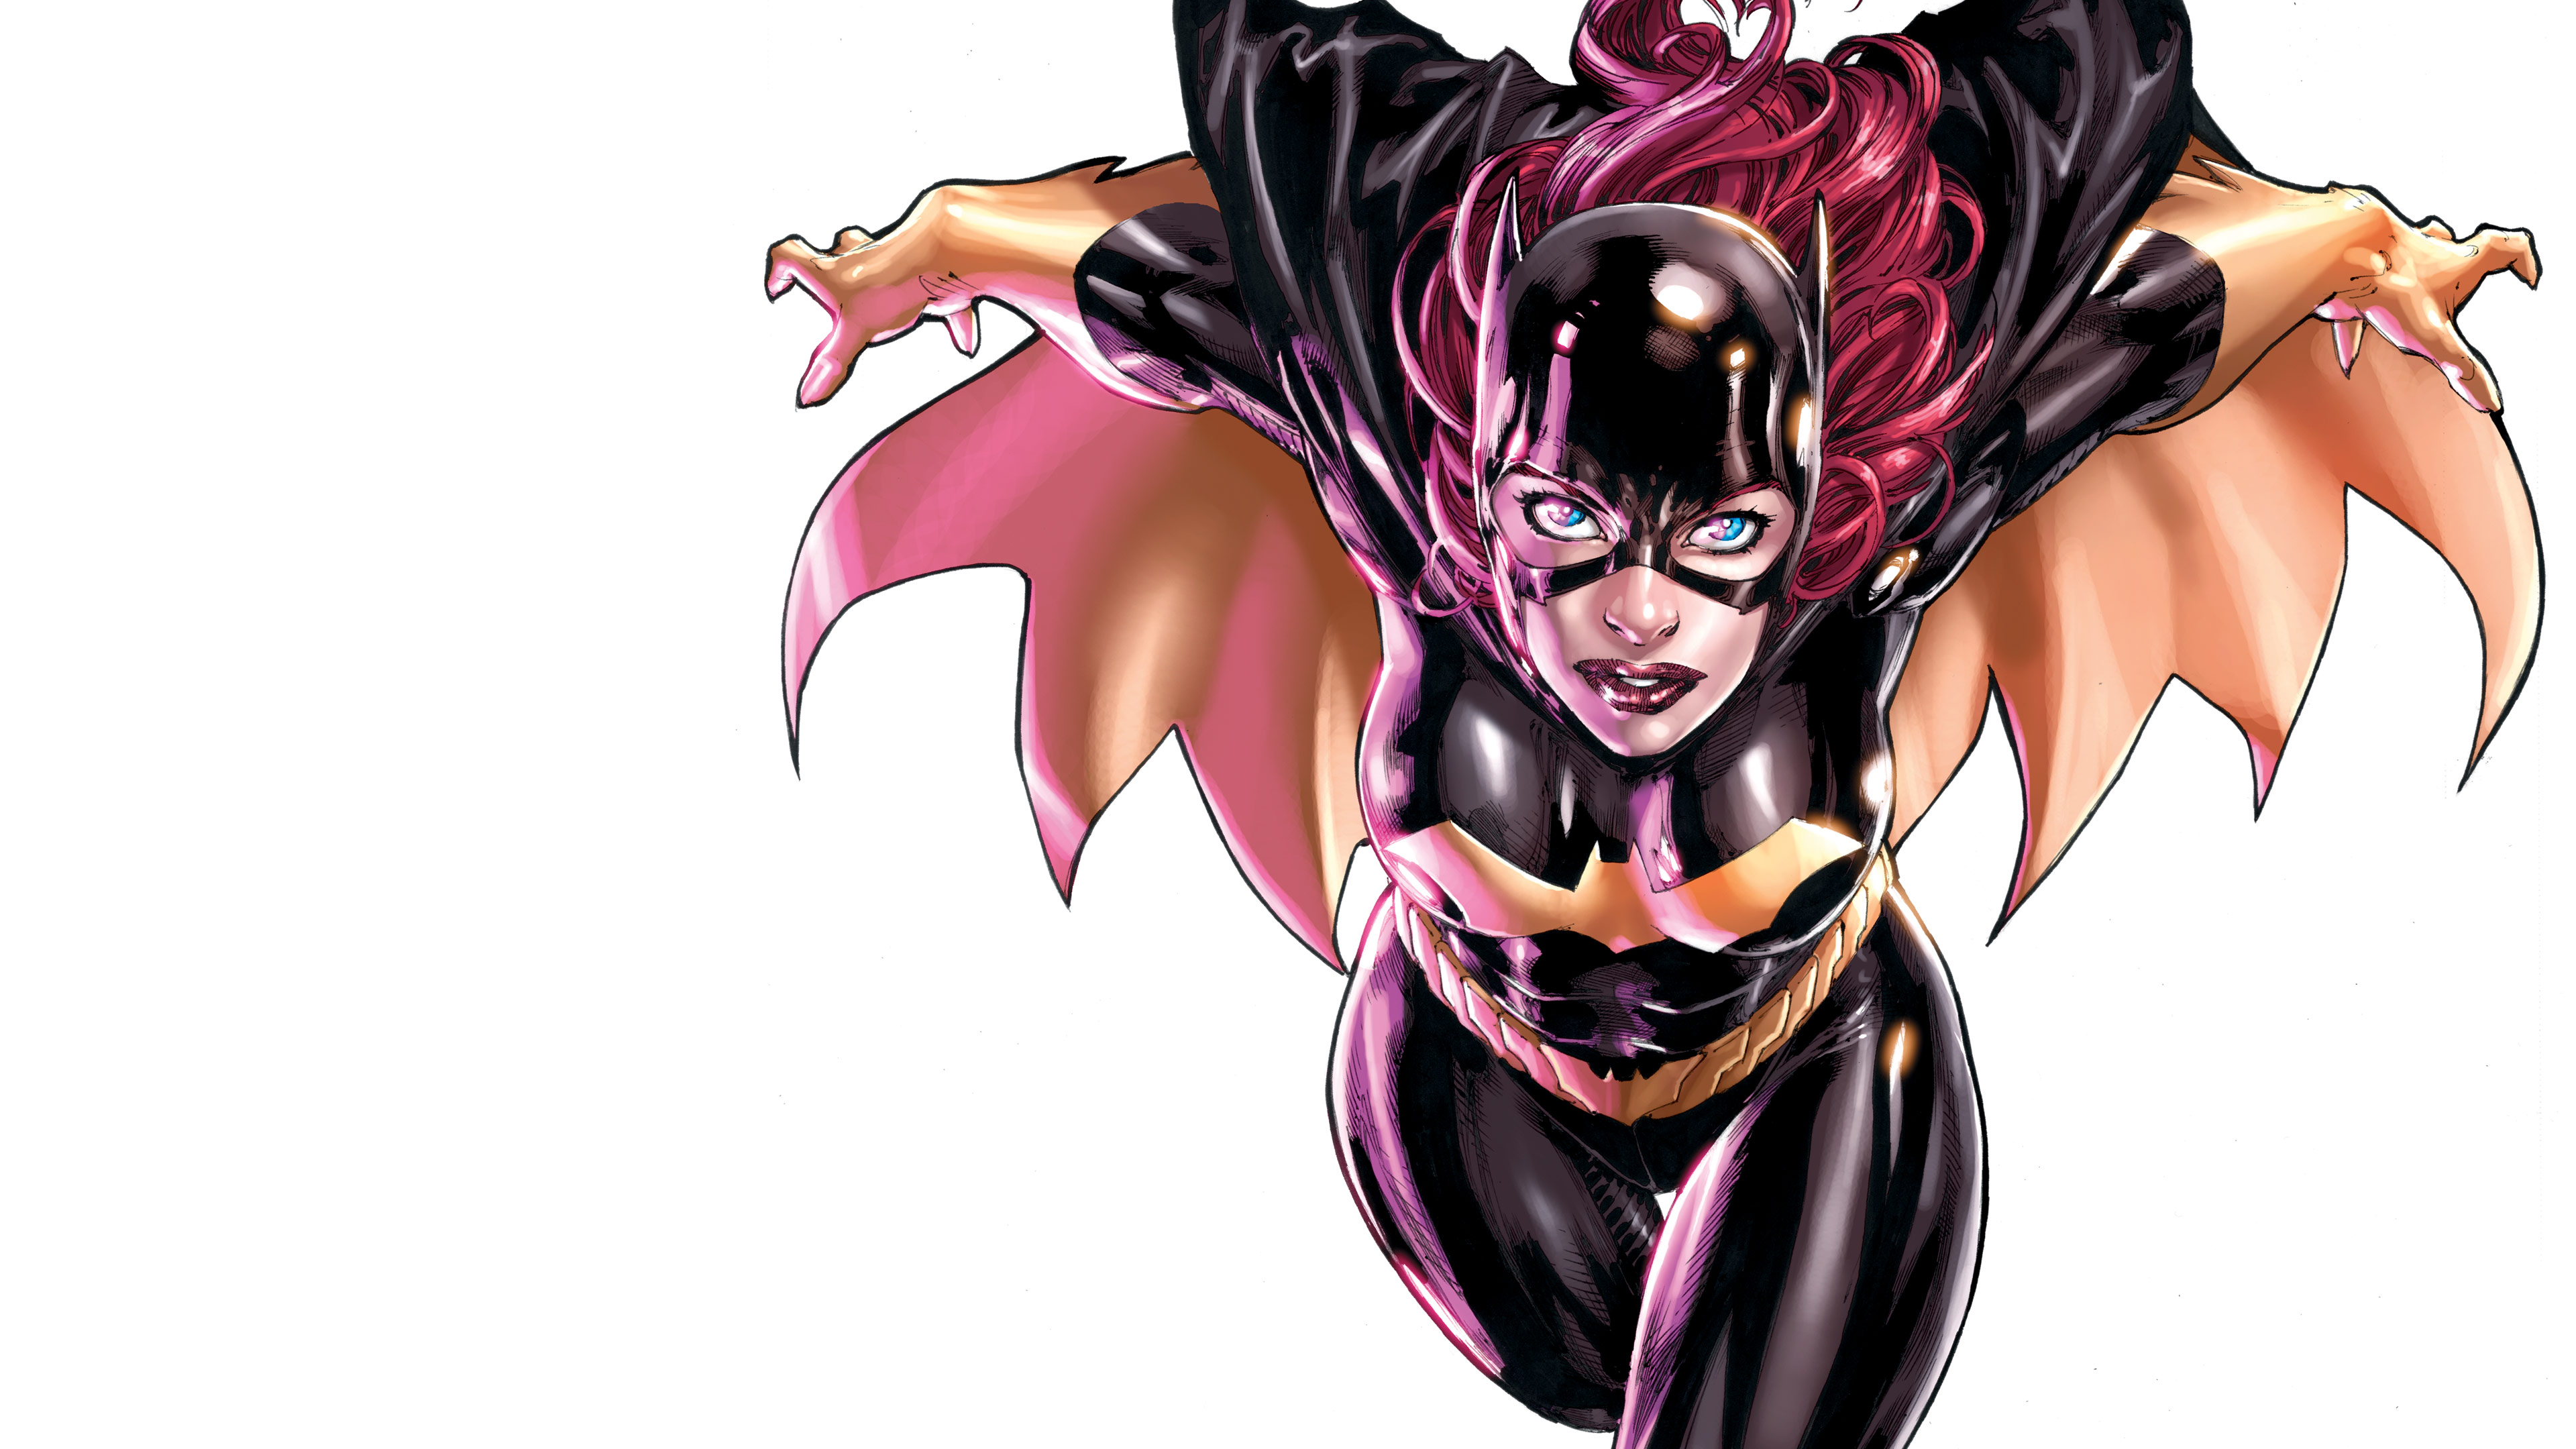 batgirlreadinglist-news-hero-190702-v1.jpg